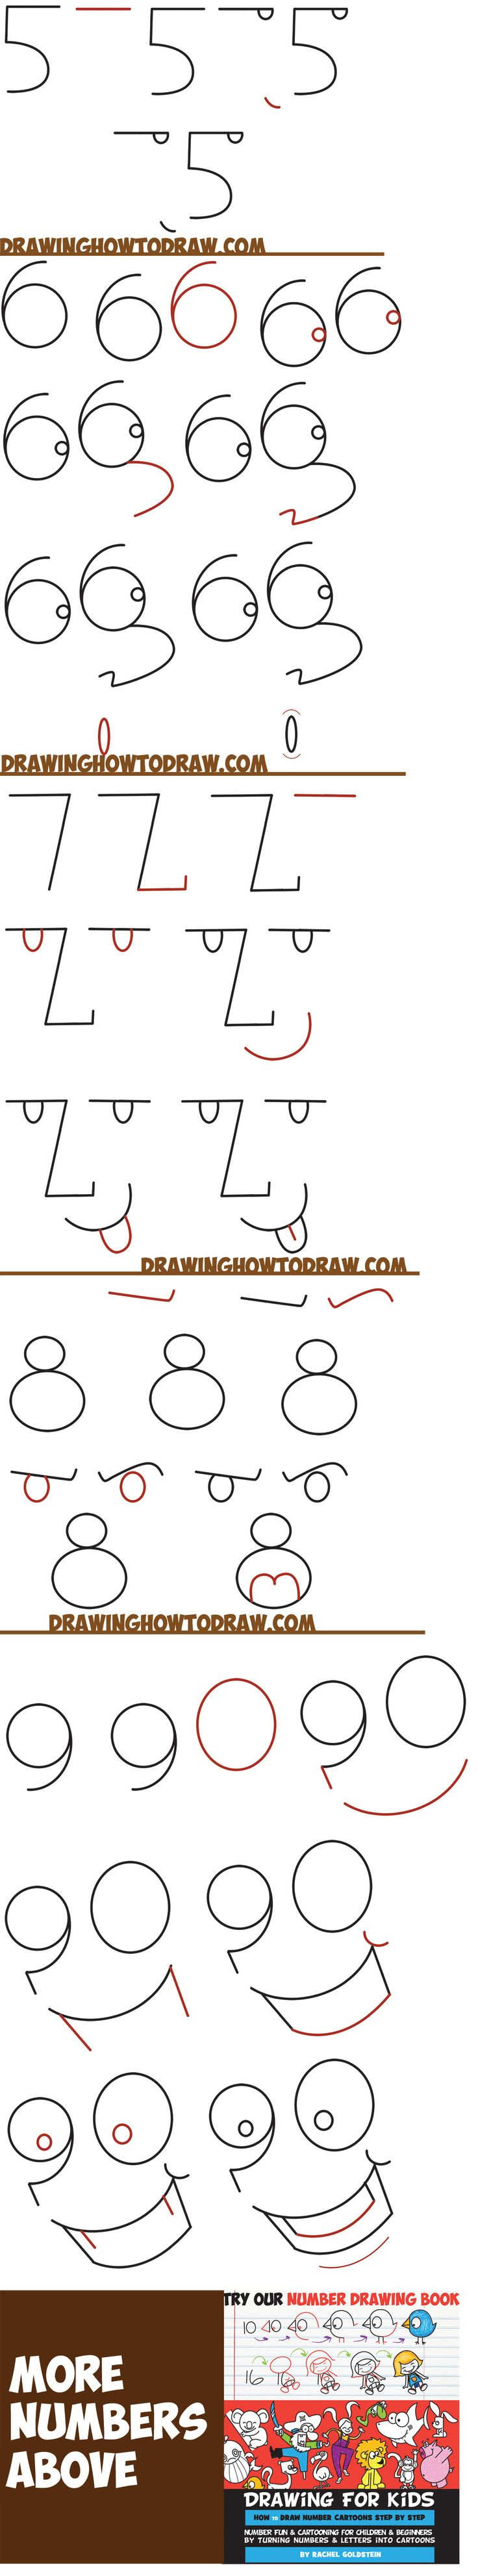 Uncategorized Drawing Lesson For Kids best 25 drawing lessons for kids ideas on pinterest learn how to draw cartoon faces from numbers 1 9 shapes in simple steps lesson and beginners step challenge simple